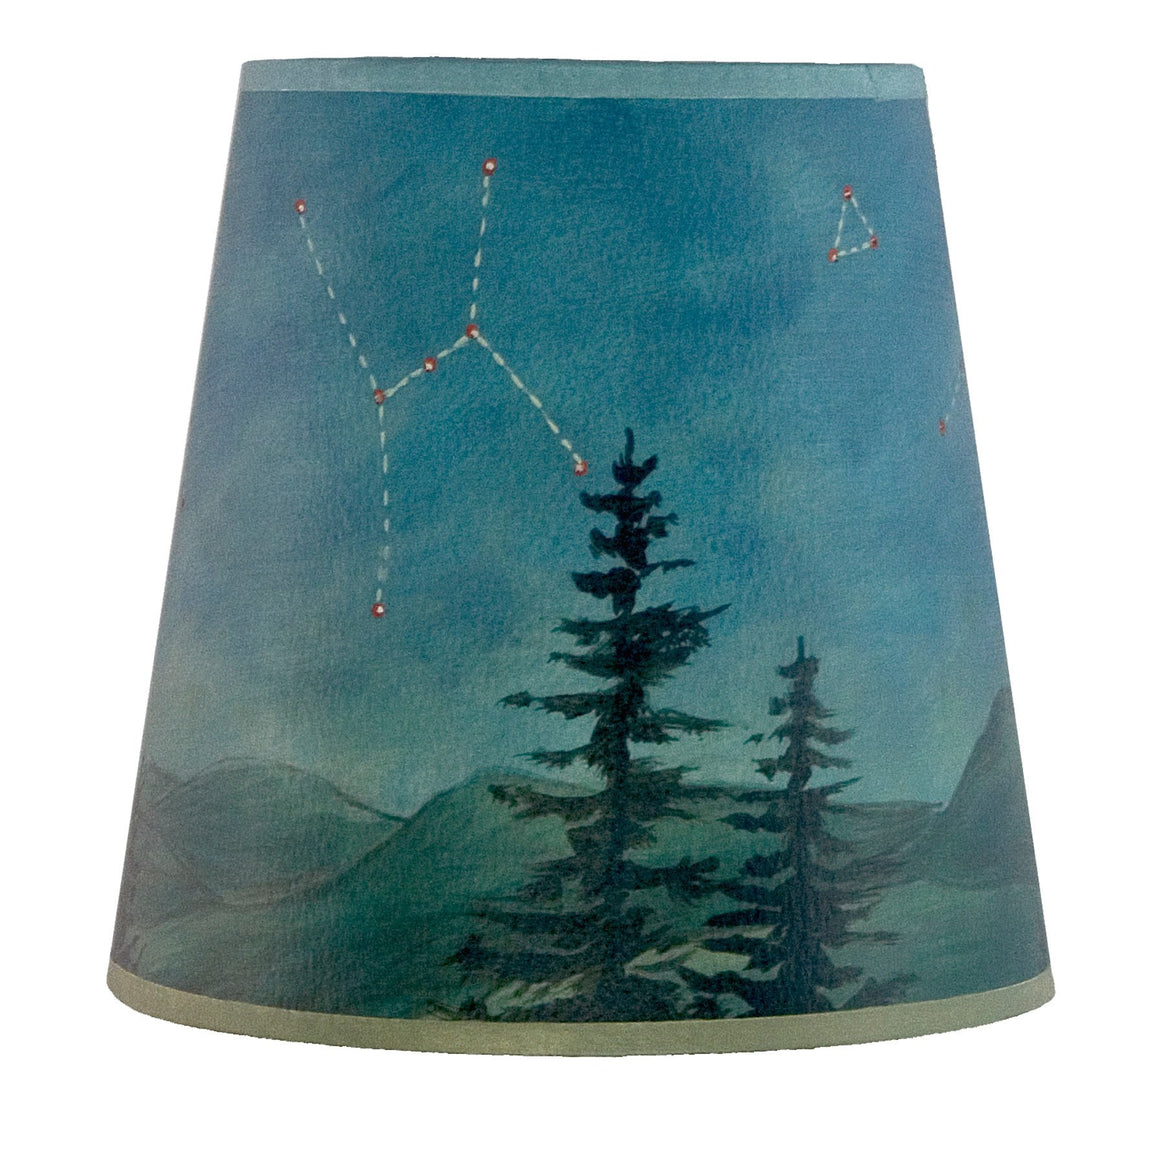 Small Drum Lamp Shade in Midnight Sky